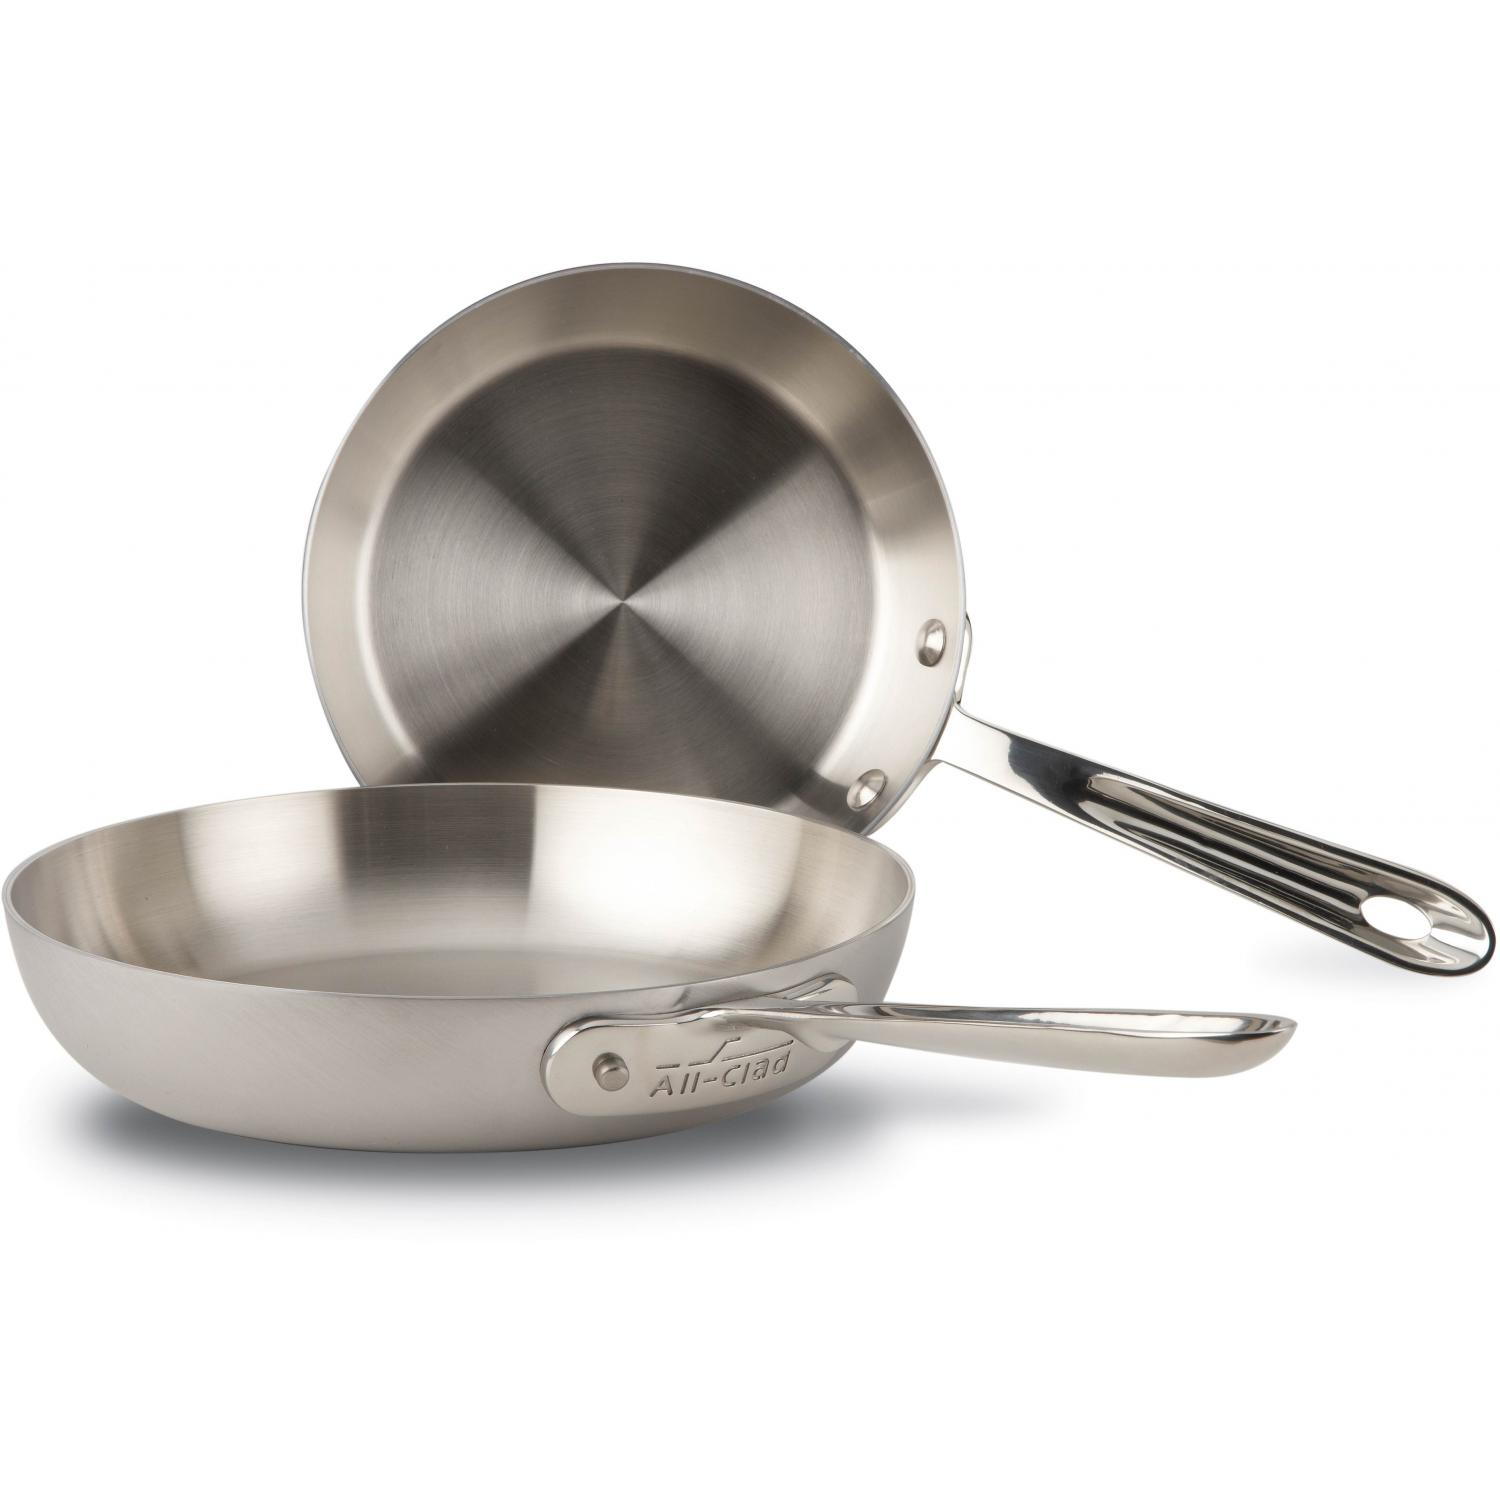 All-Clad D5 Stainless French Skillet Set - 2 Pieces